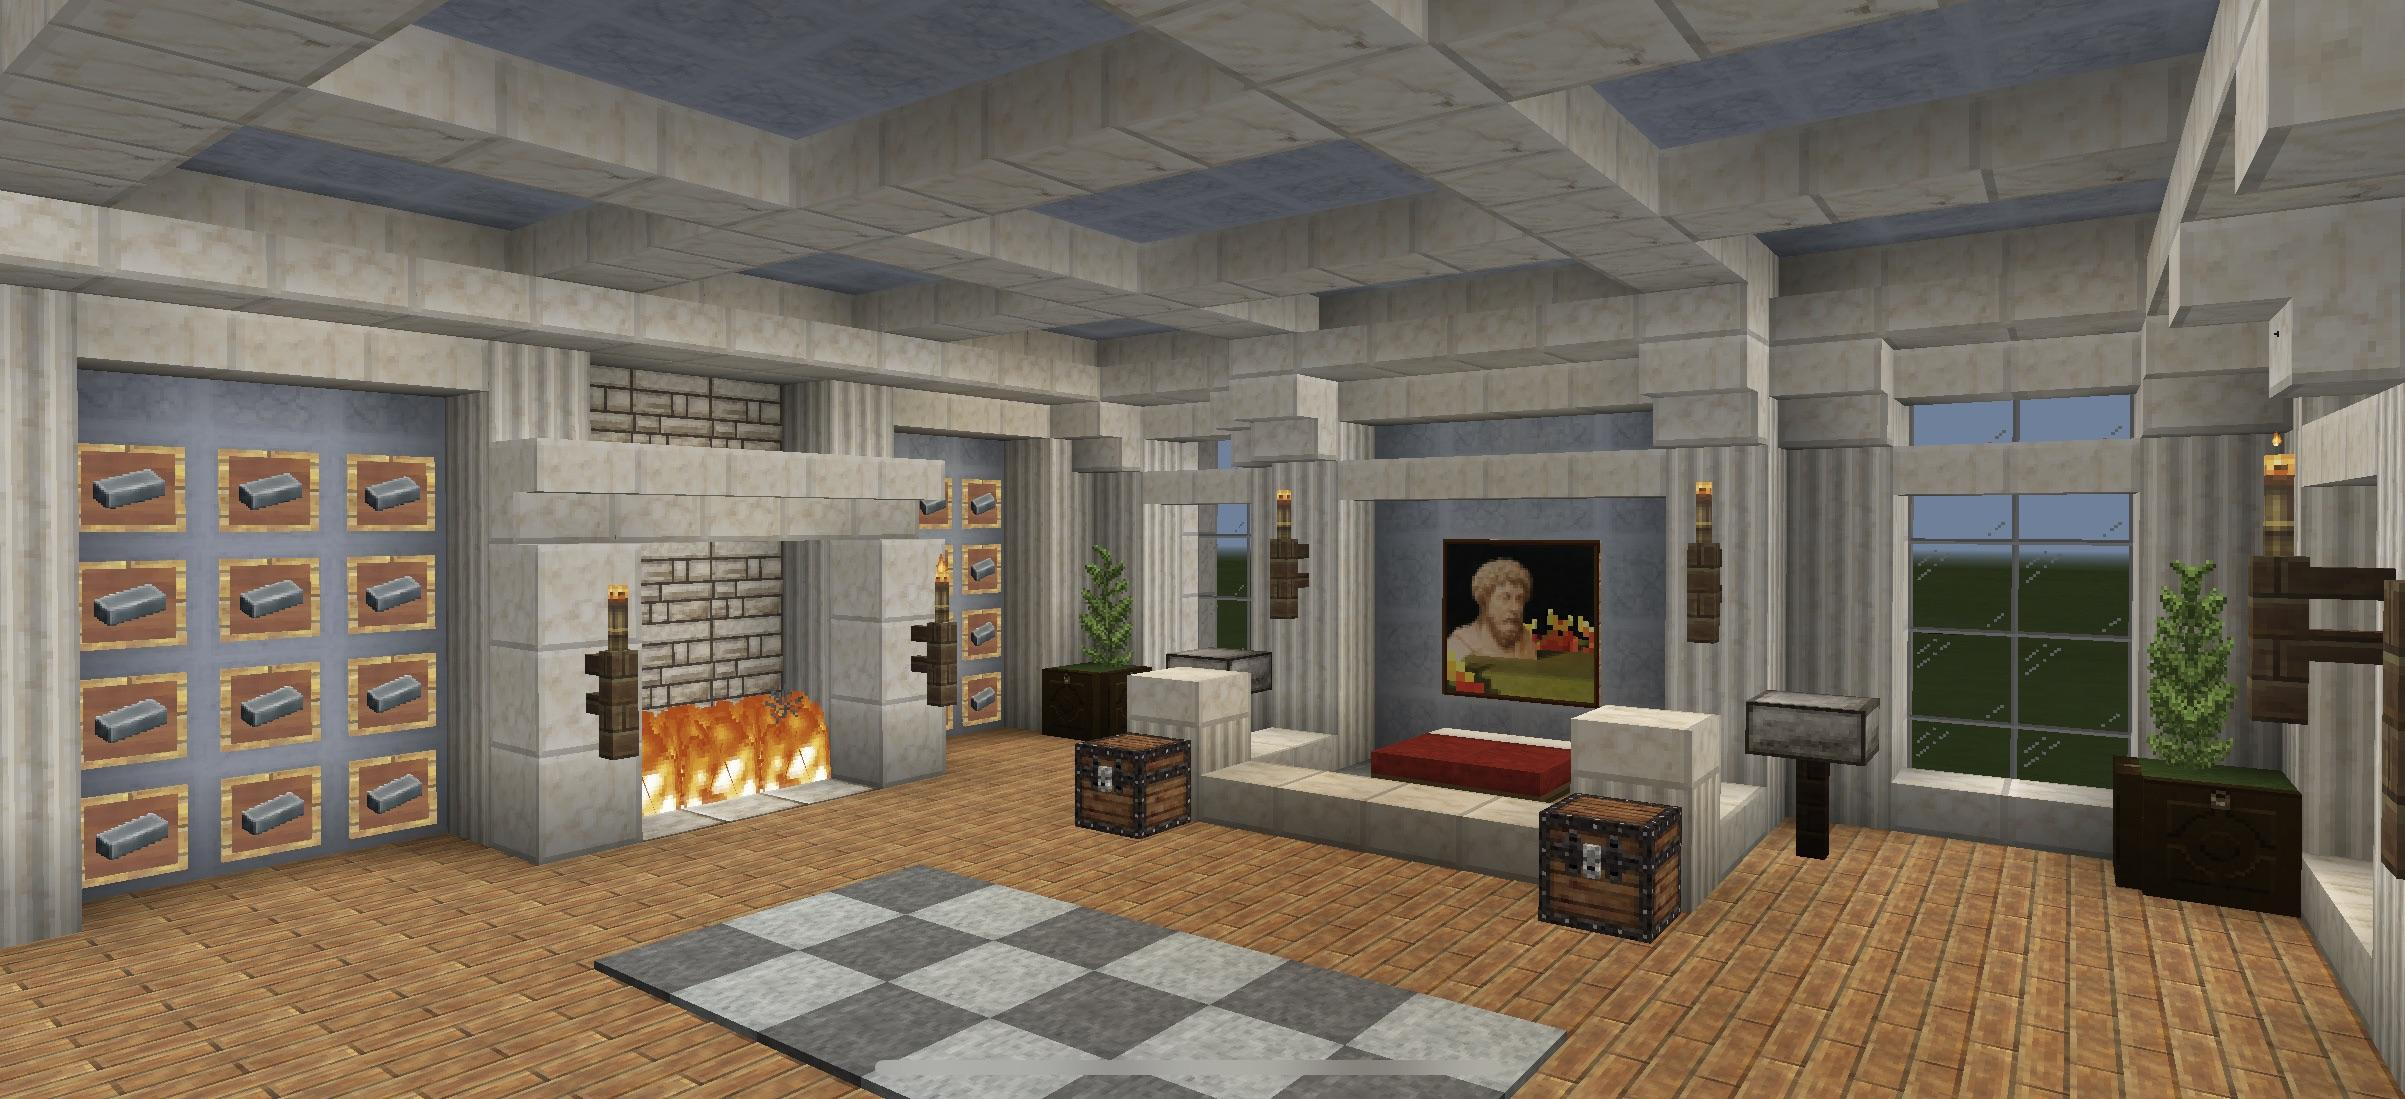 Due to its global love, it's a popular theme for bedrooms and playrooms. Bedroom. : Minecraft